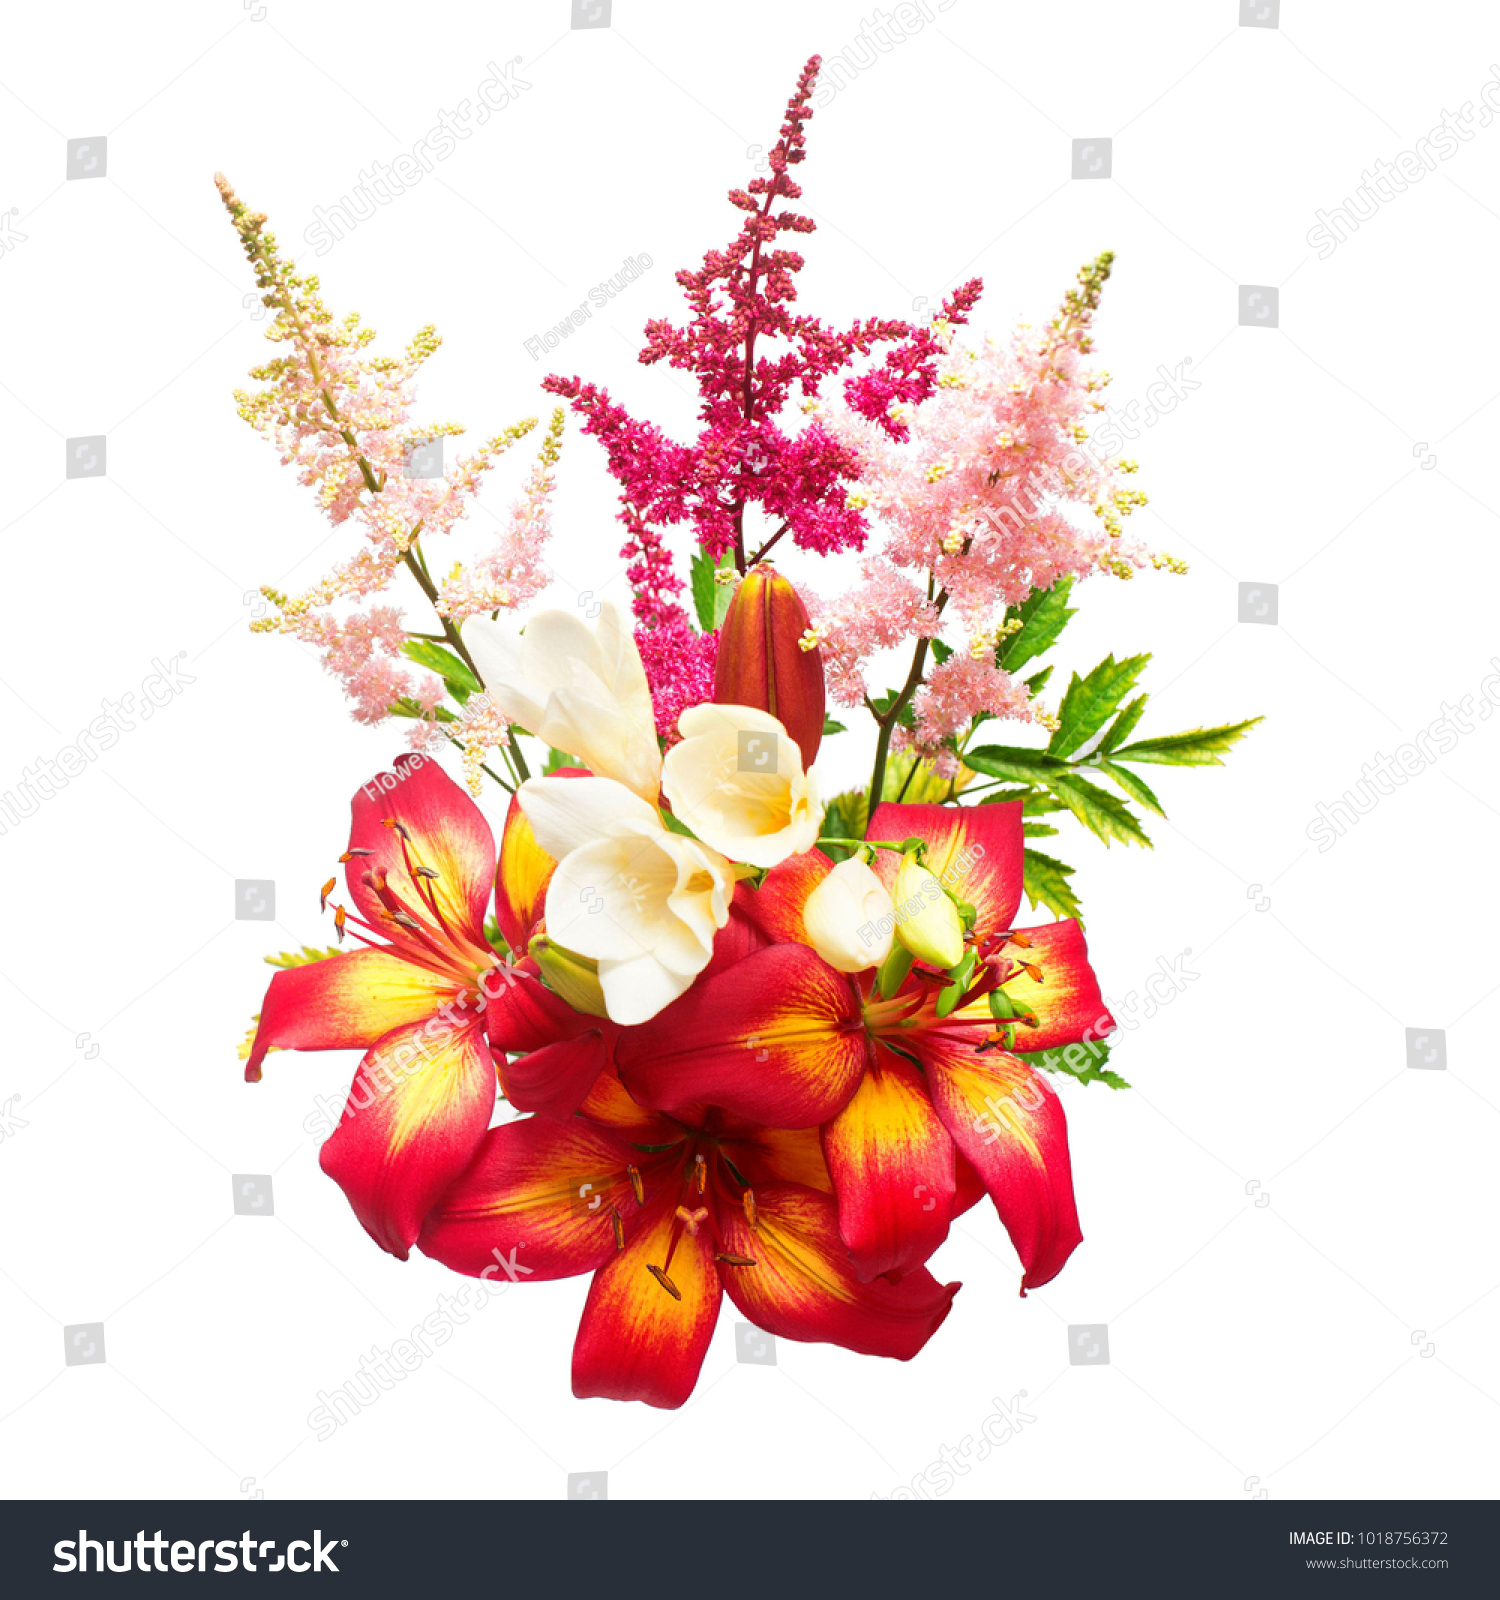 Flowers lily ixia astilbe bouquet isolated stock photo royalty free flowers lily ixia astilbe bouquet isolated stock photo royalty free 1018756372 shutterstock izmirmasajfo